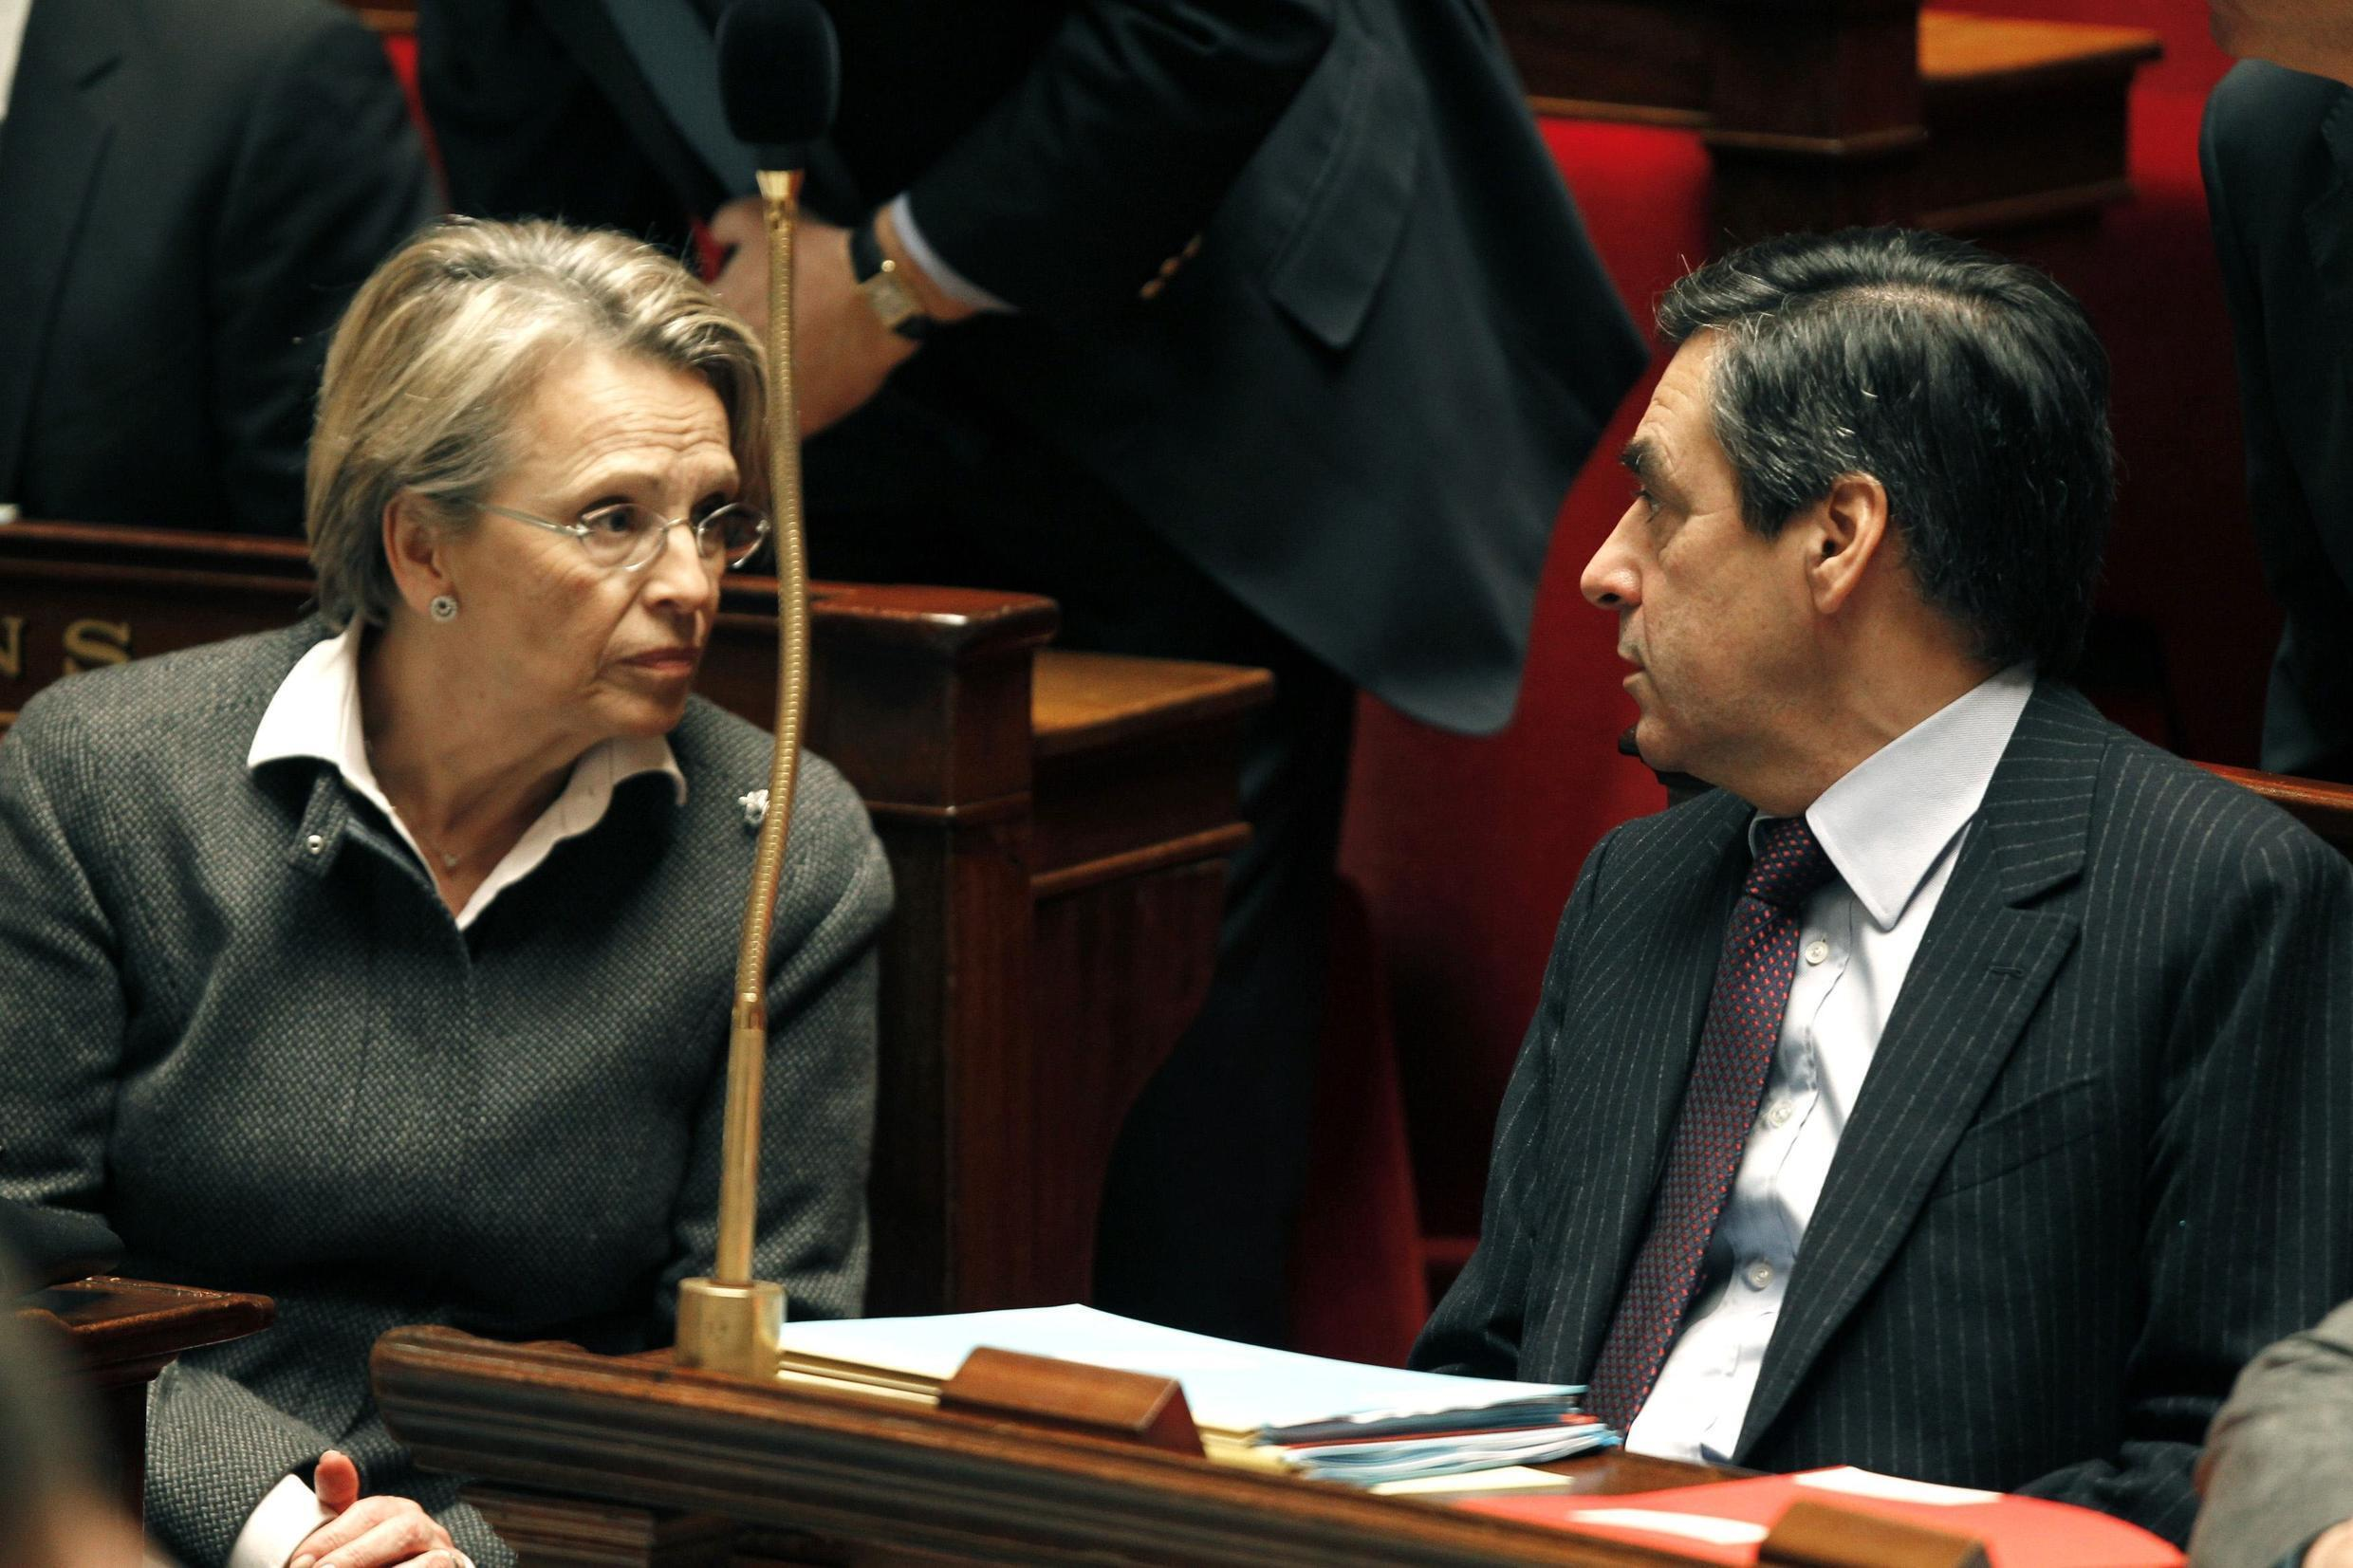 Prime Minister Francois Fillon (R) and Foreign Minister Michèle Alliot-Marie at the National Assembly in Paris, 15 February